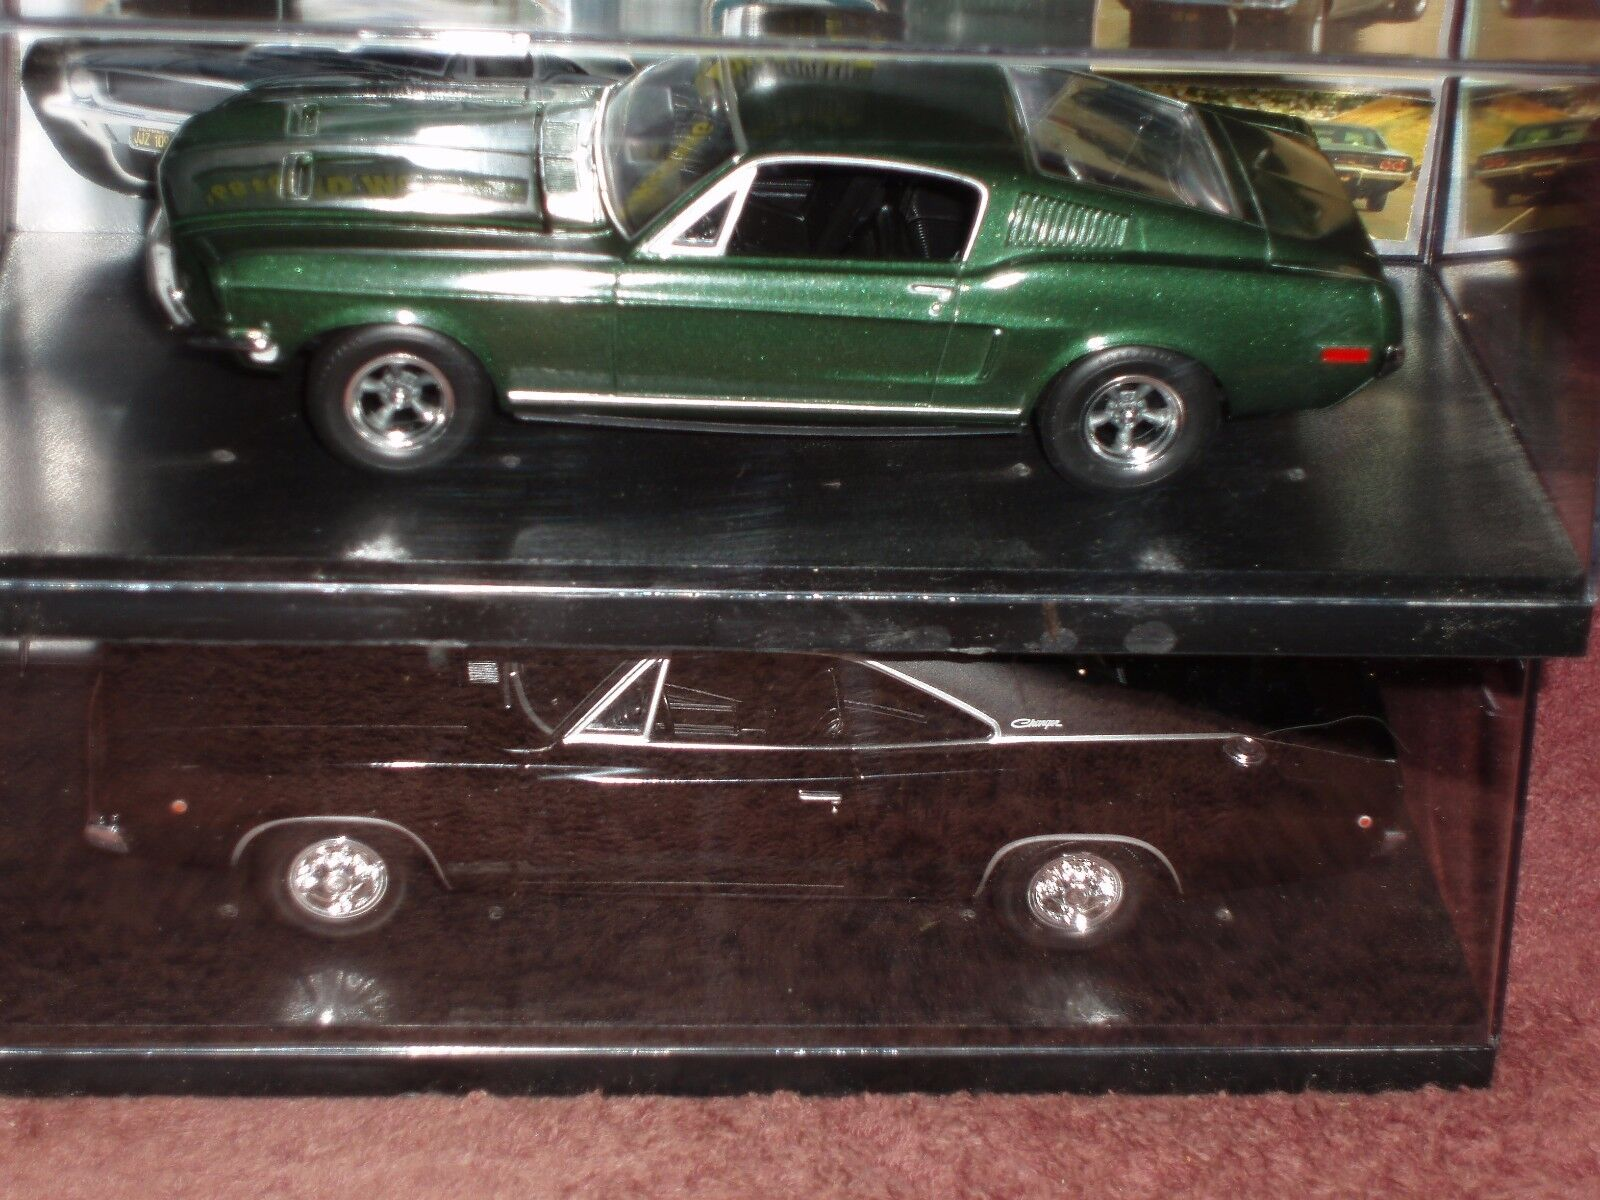 SET of 2 MUSTANG & CHARGER CHARGER CHARGER BULLITT 1 25 1968 w DISPLAY CASES & GRAPHICS da46a1